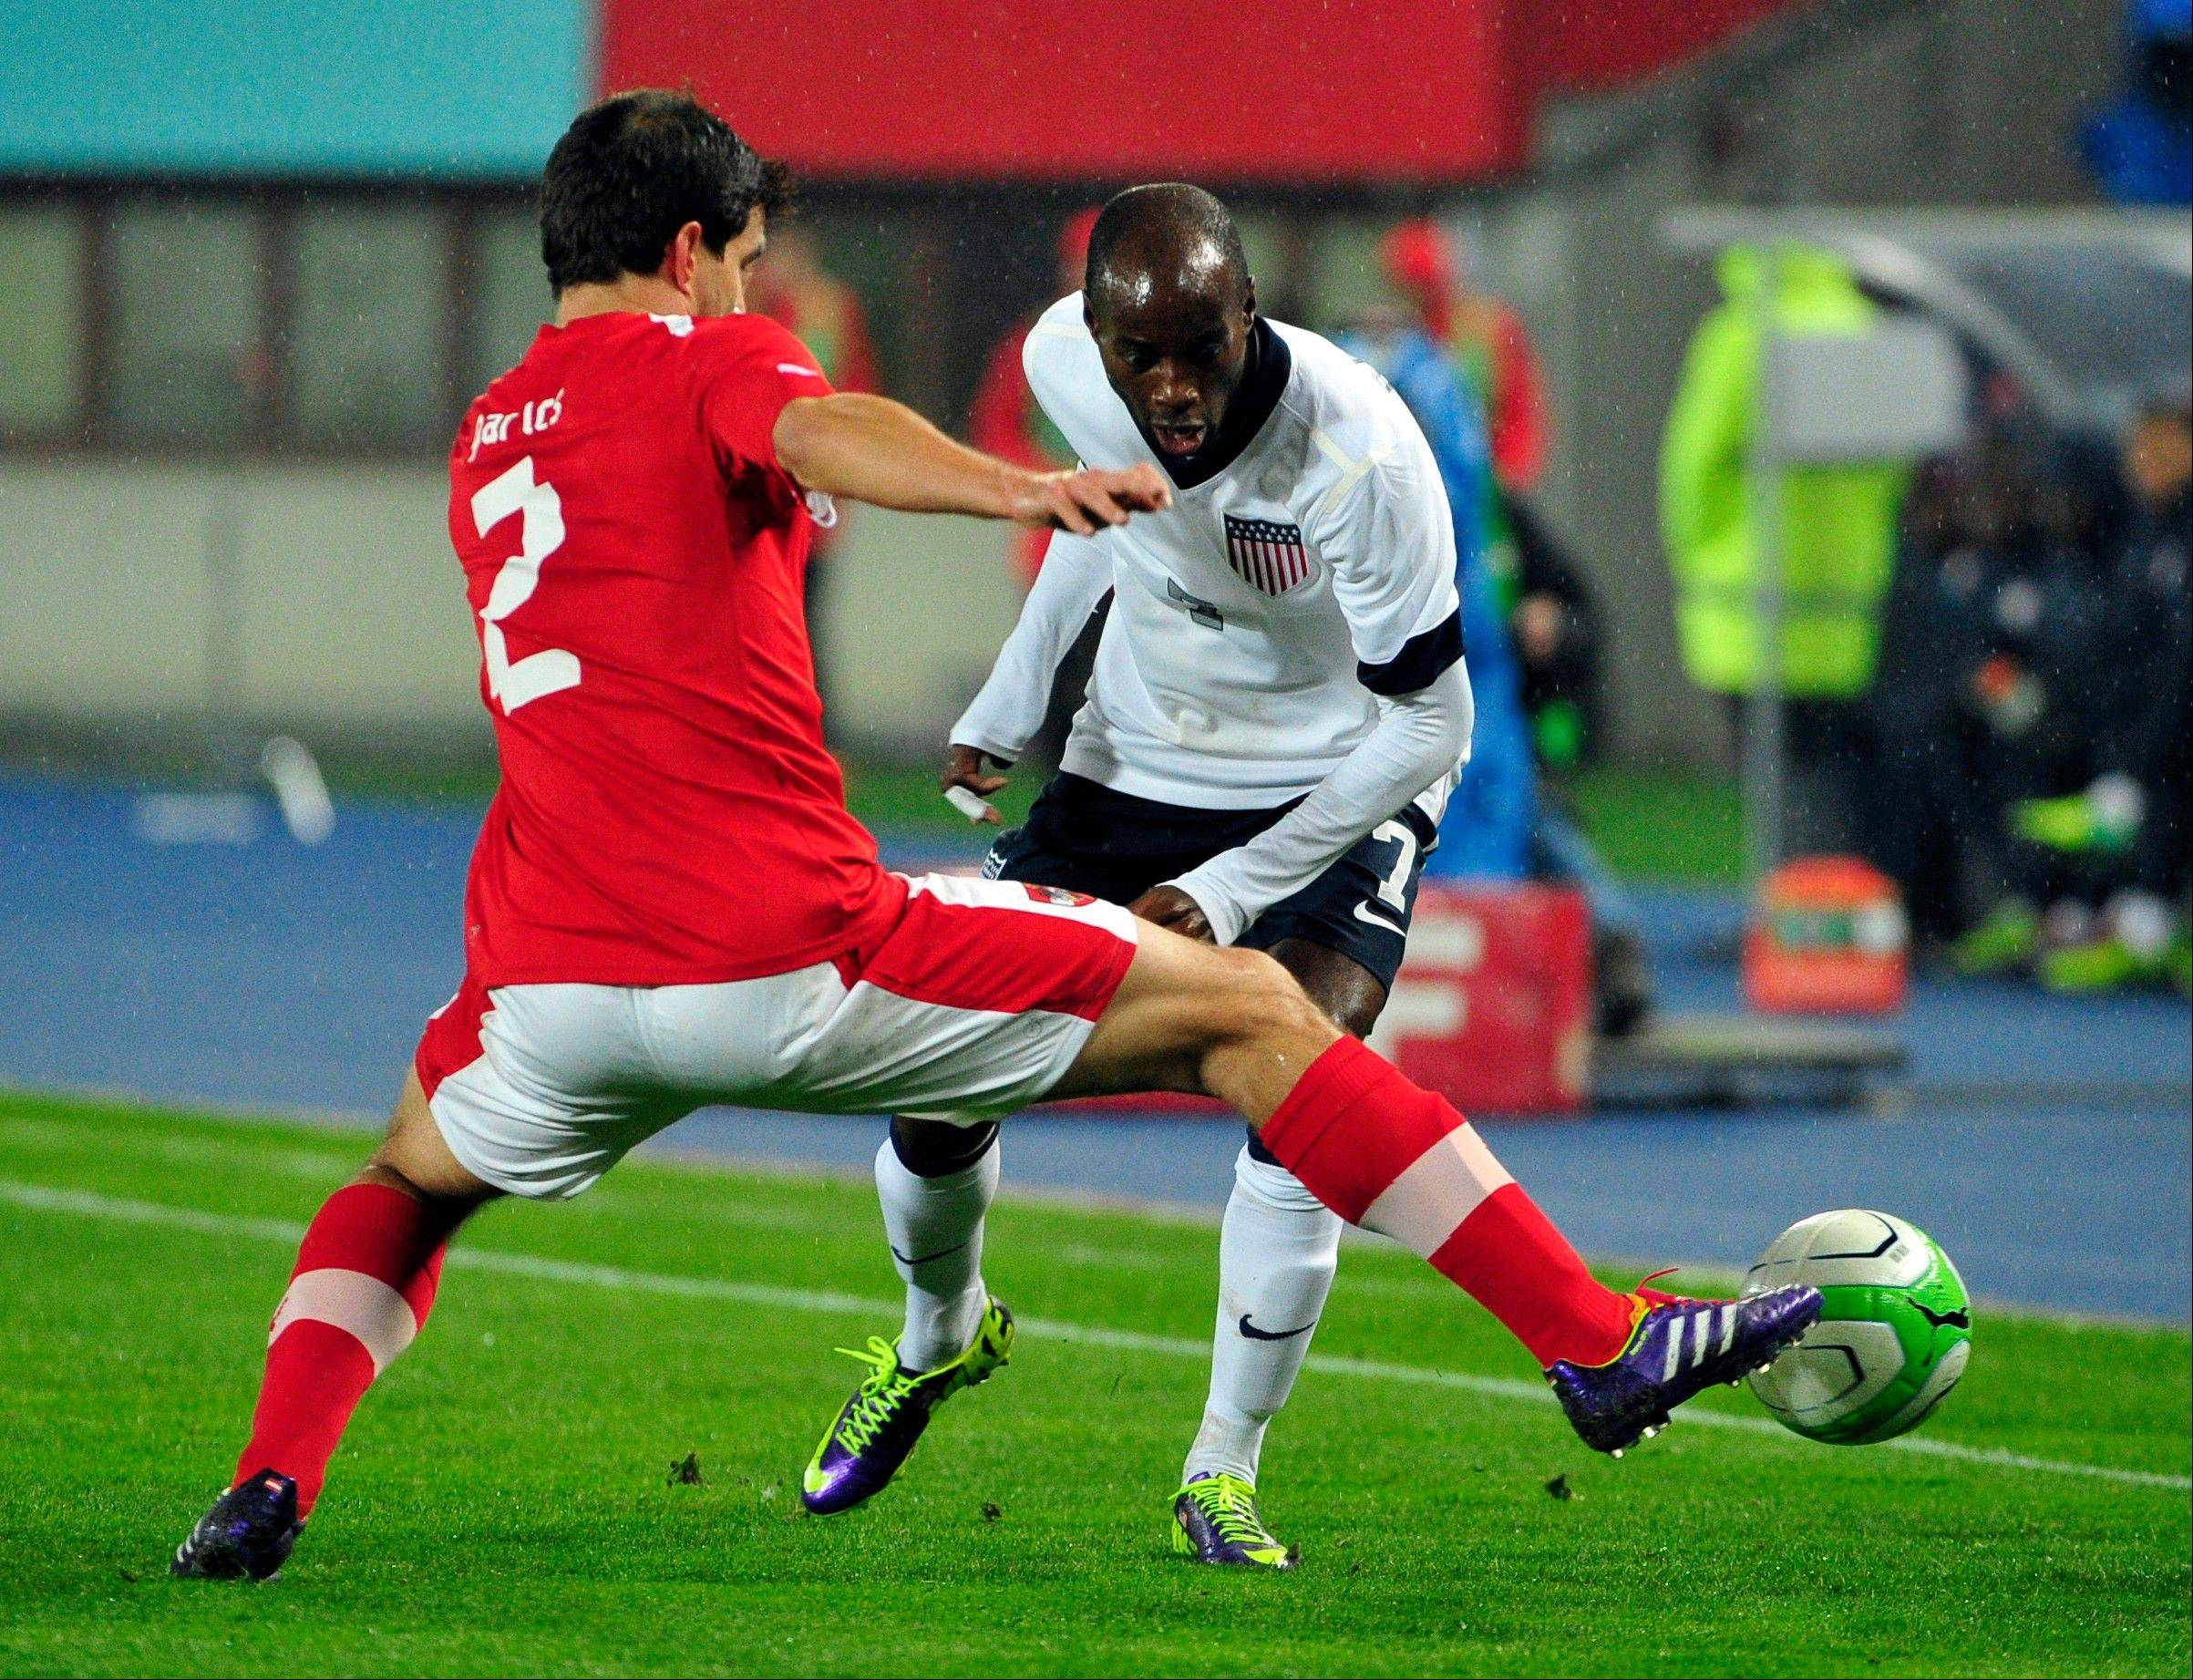 Austria's Gyoergy Garics, left, and DaMarcus Beasley of U.S. challenge for the ball during a friendly soccer match Tuesday in Vienna, Austria.